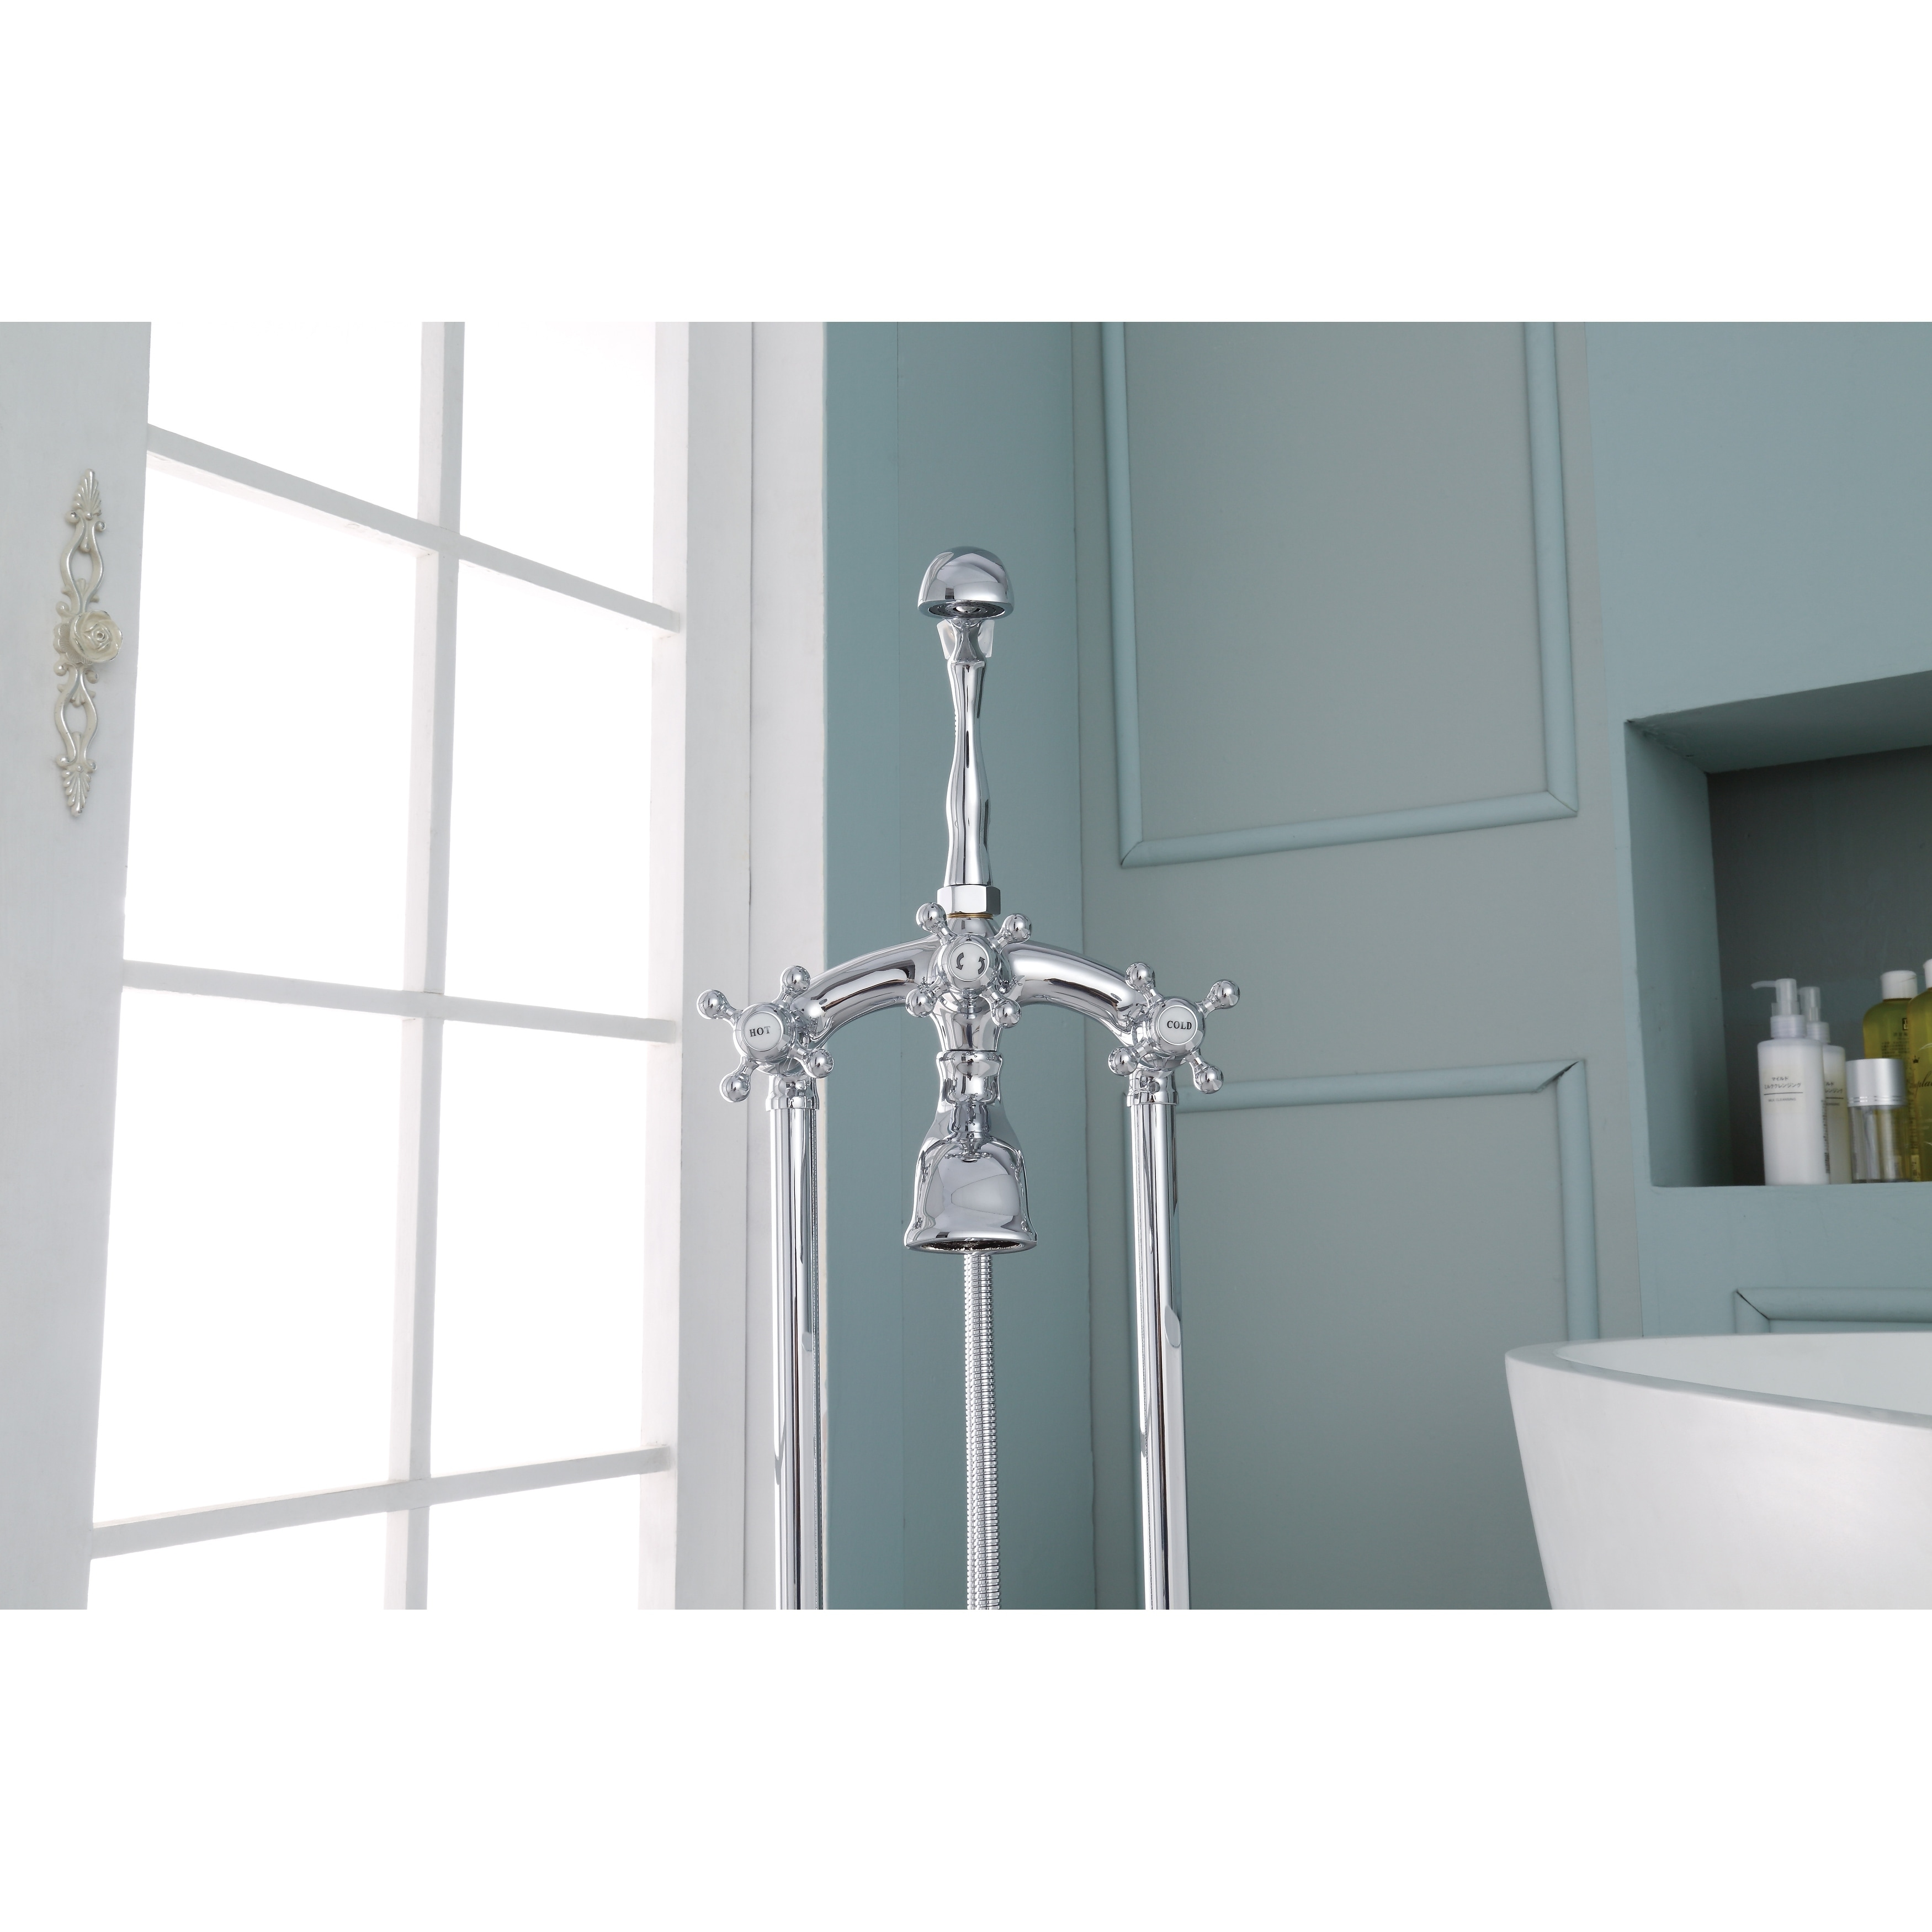 Ariel 3-Handle Freestanding Clawfoot Tub Faucet with Hand Shower ...